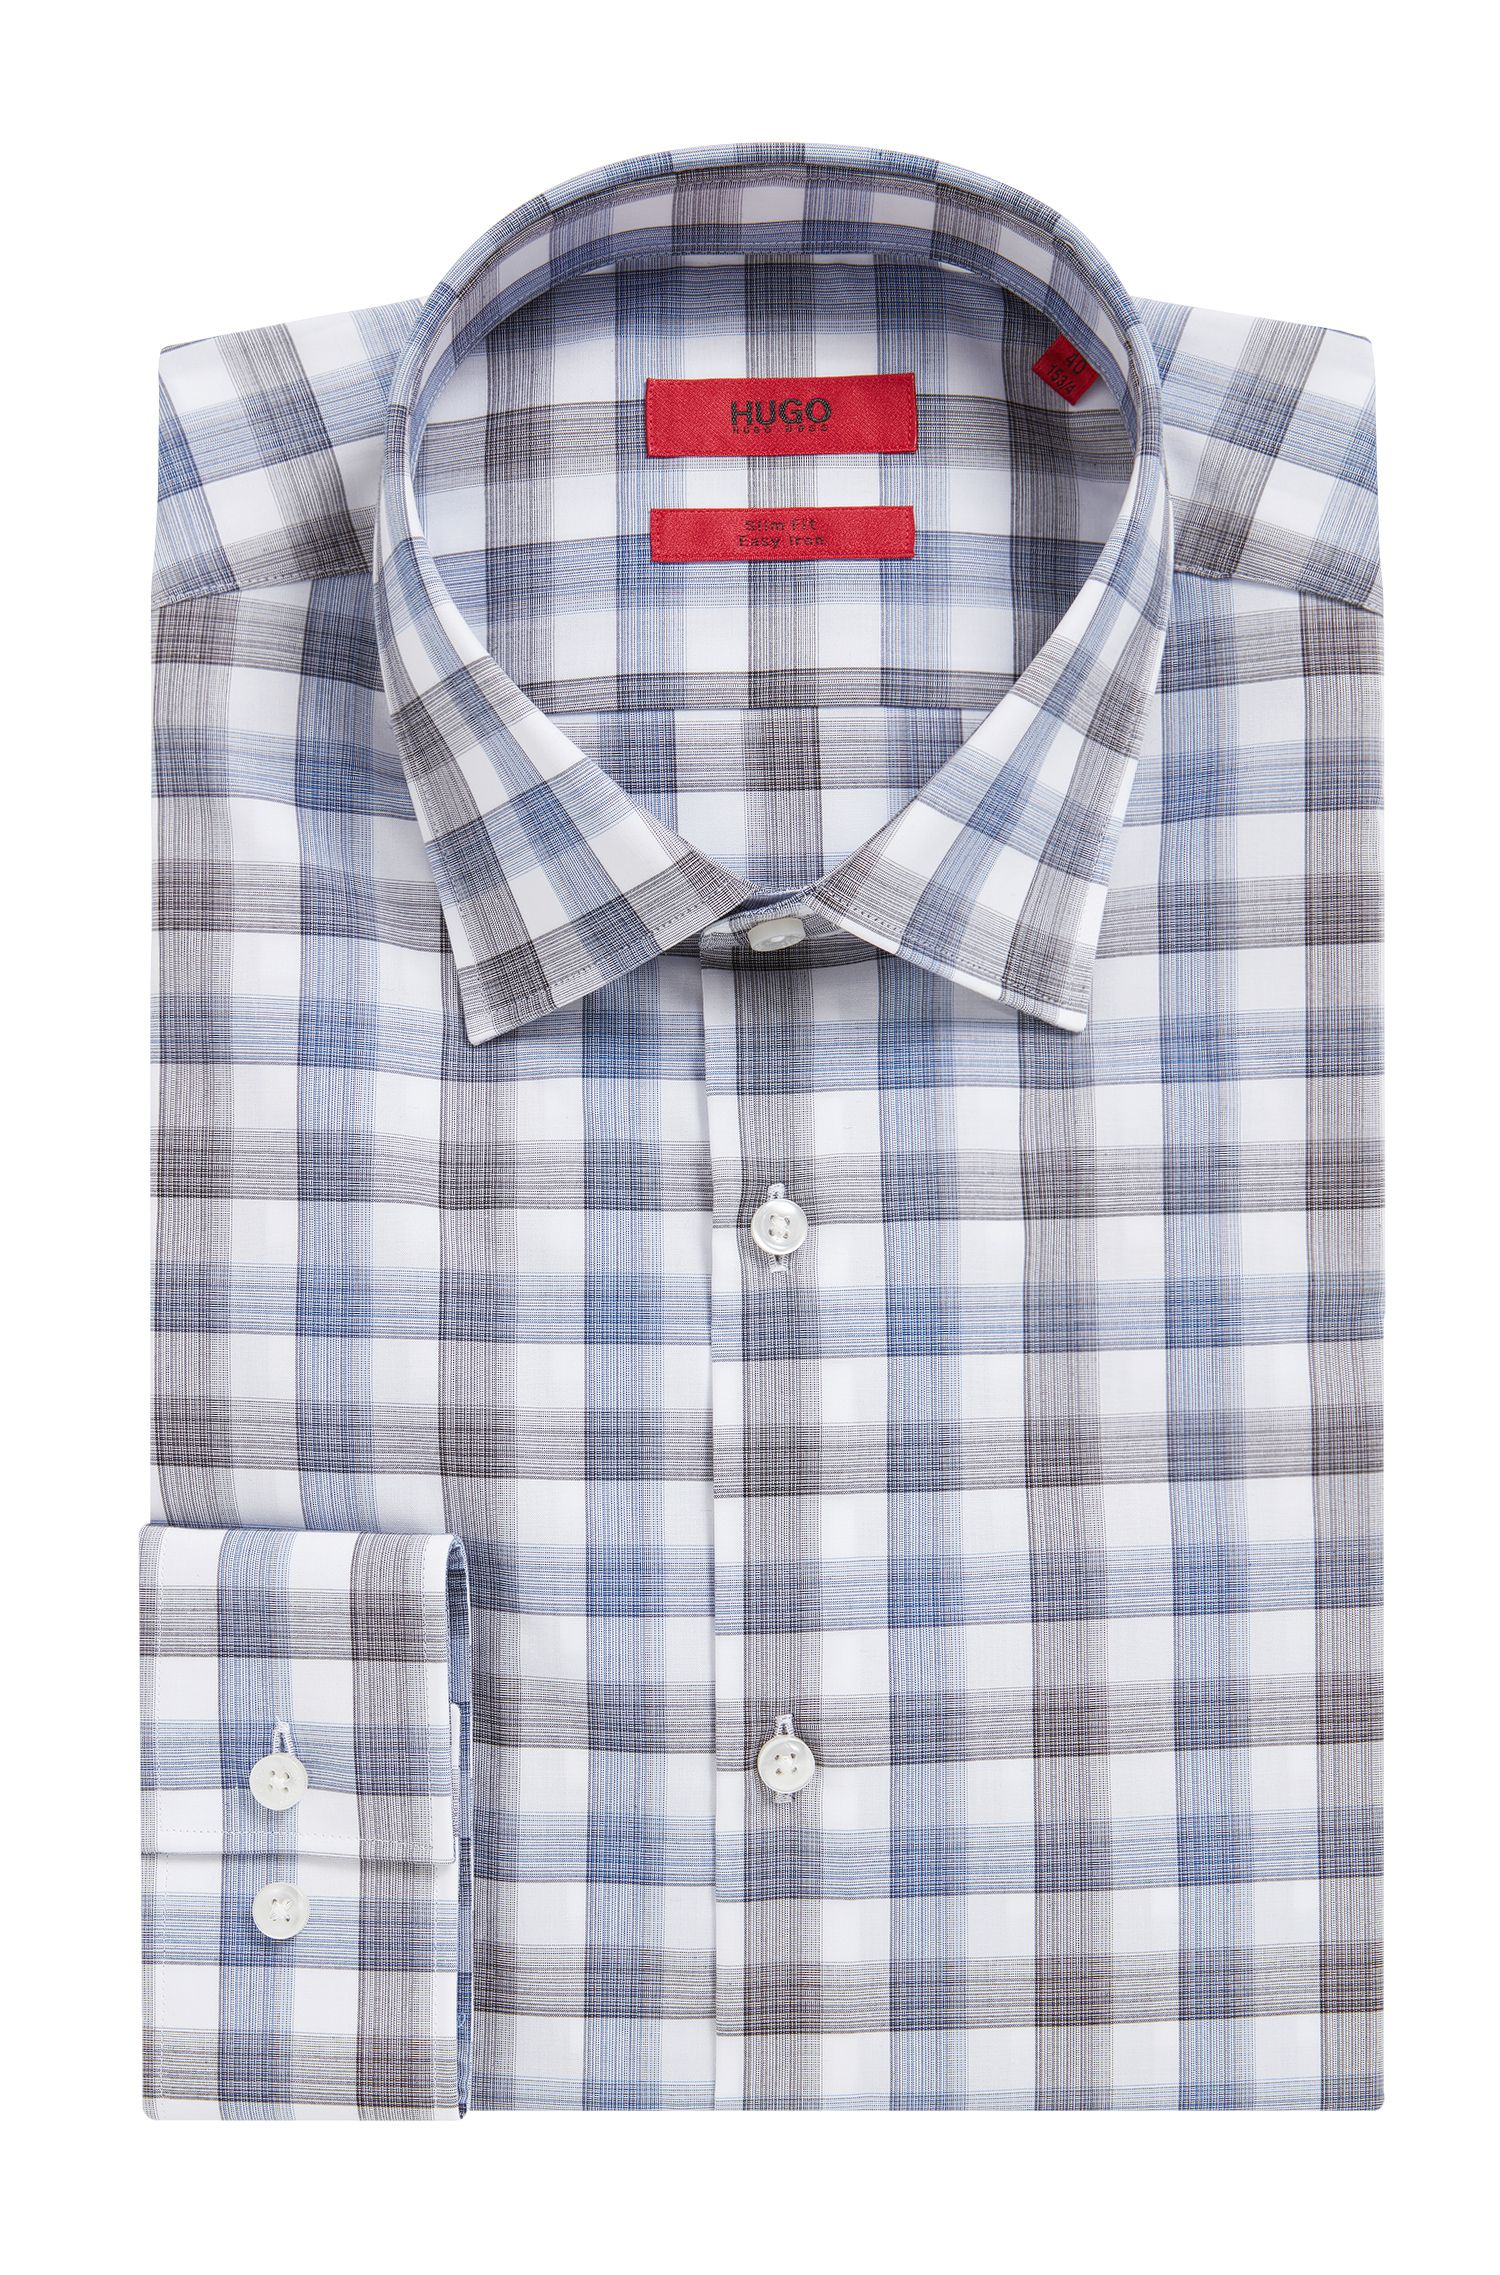 'C-Jenno' | Slim Fit, Brushed Check Easy Iron Cotton Dress Shirt